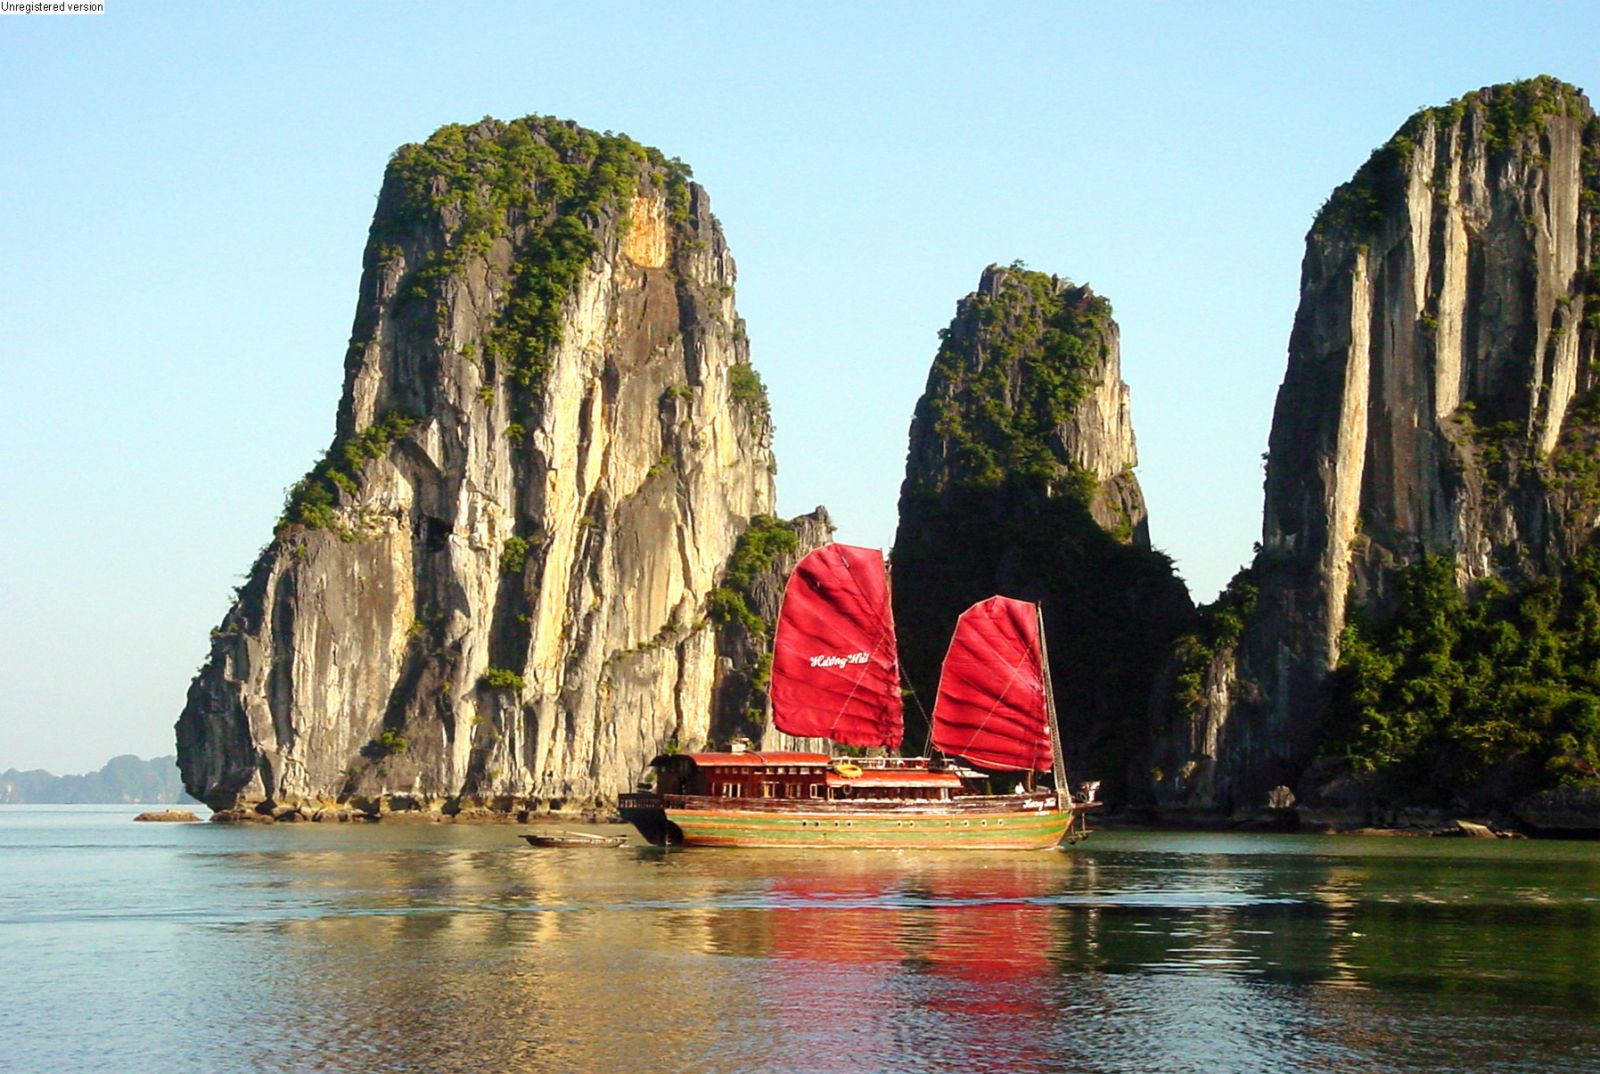 SHORE EXCURSIONS : TOUR FROM CAI LAN PORT TO HA LONG BAY